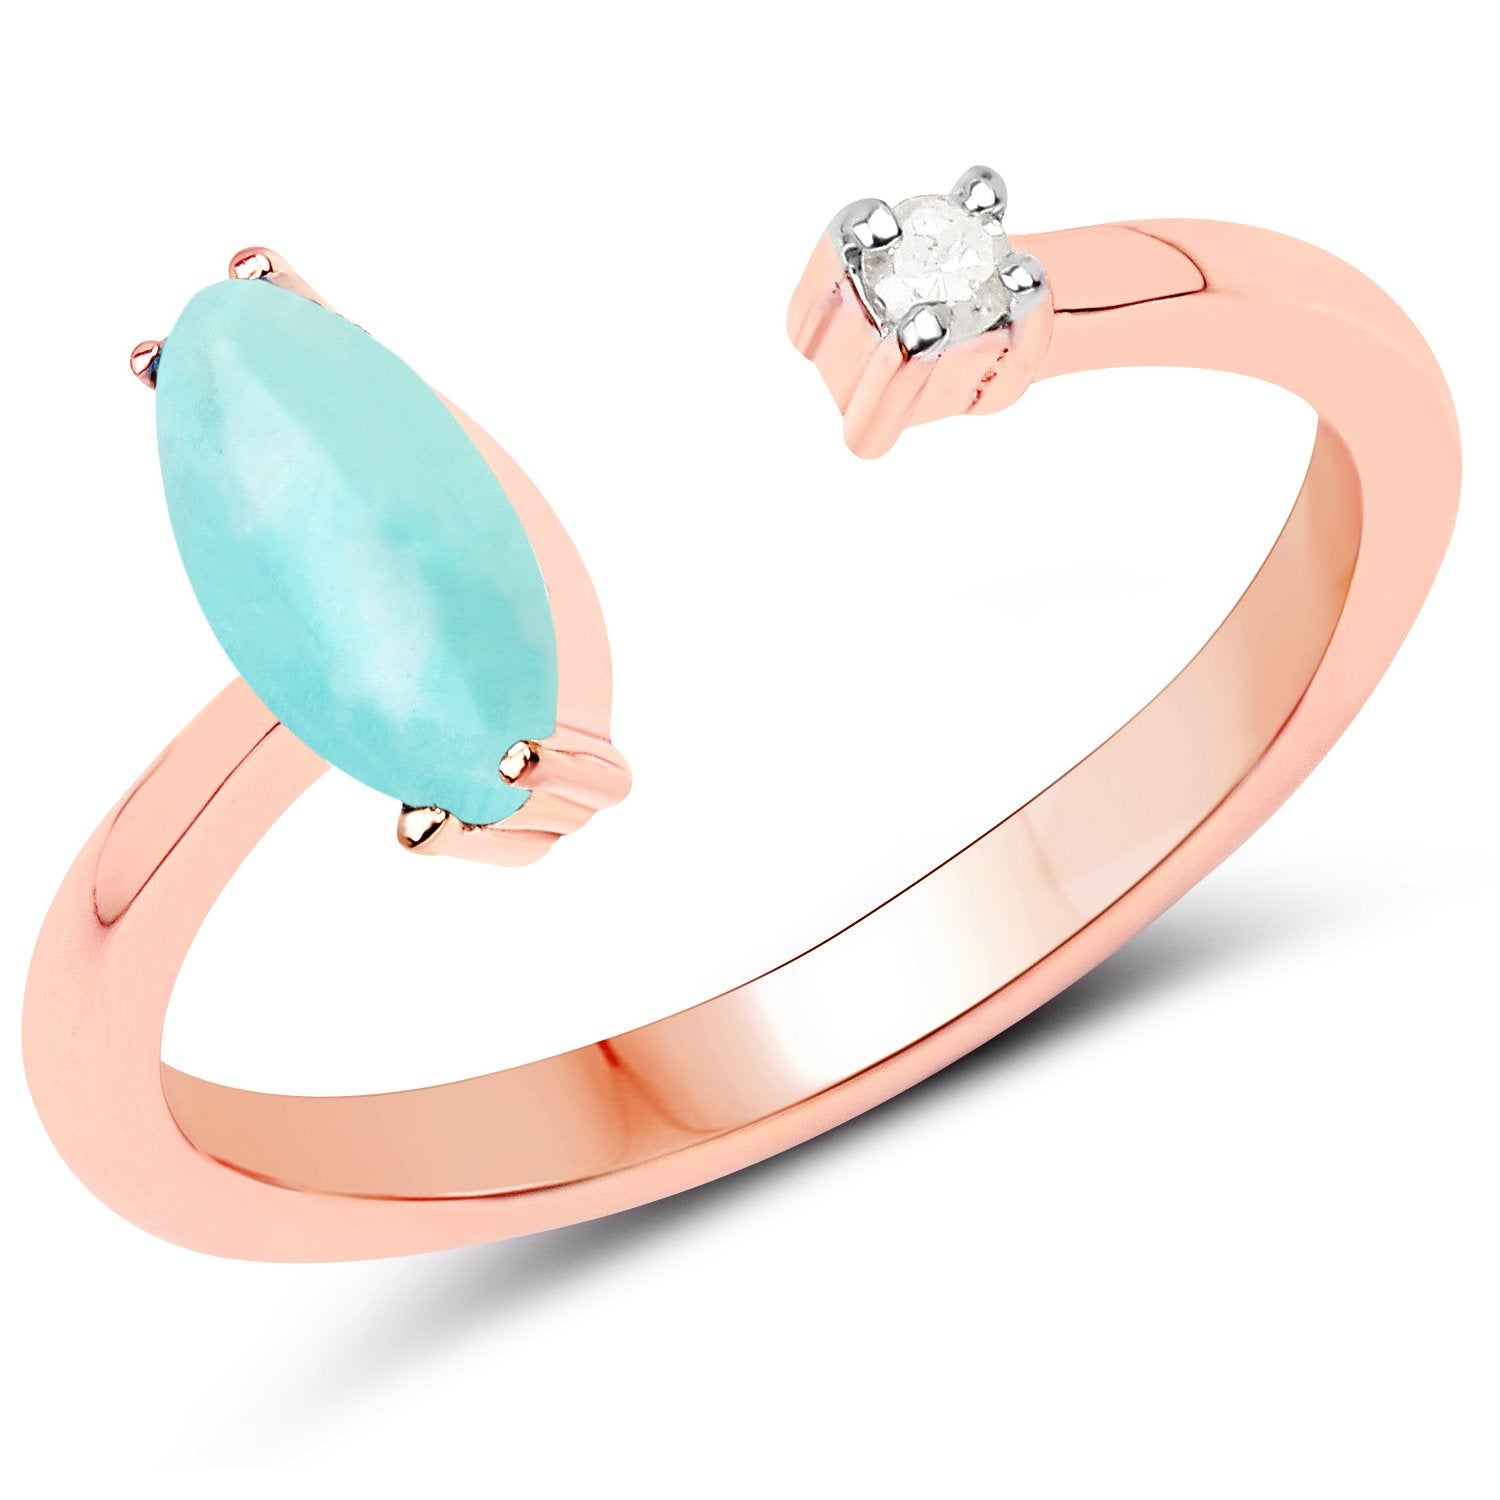 LoveHuang 0.53 Carats Genuine Amazonite and White Diamond (I-J, I2-I3) Ring Solid .925 Sterling Silver With 18KT Rose Gold Plating